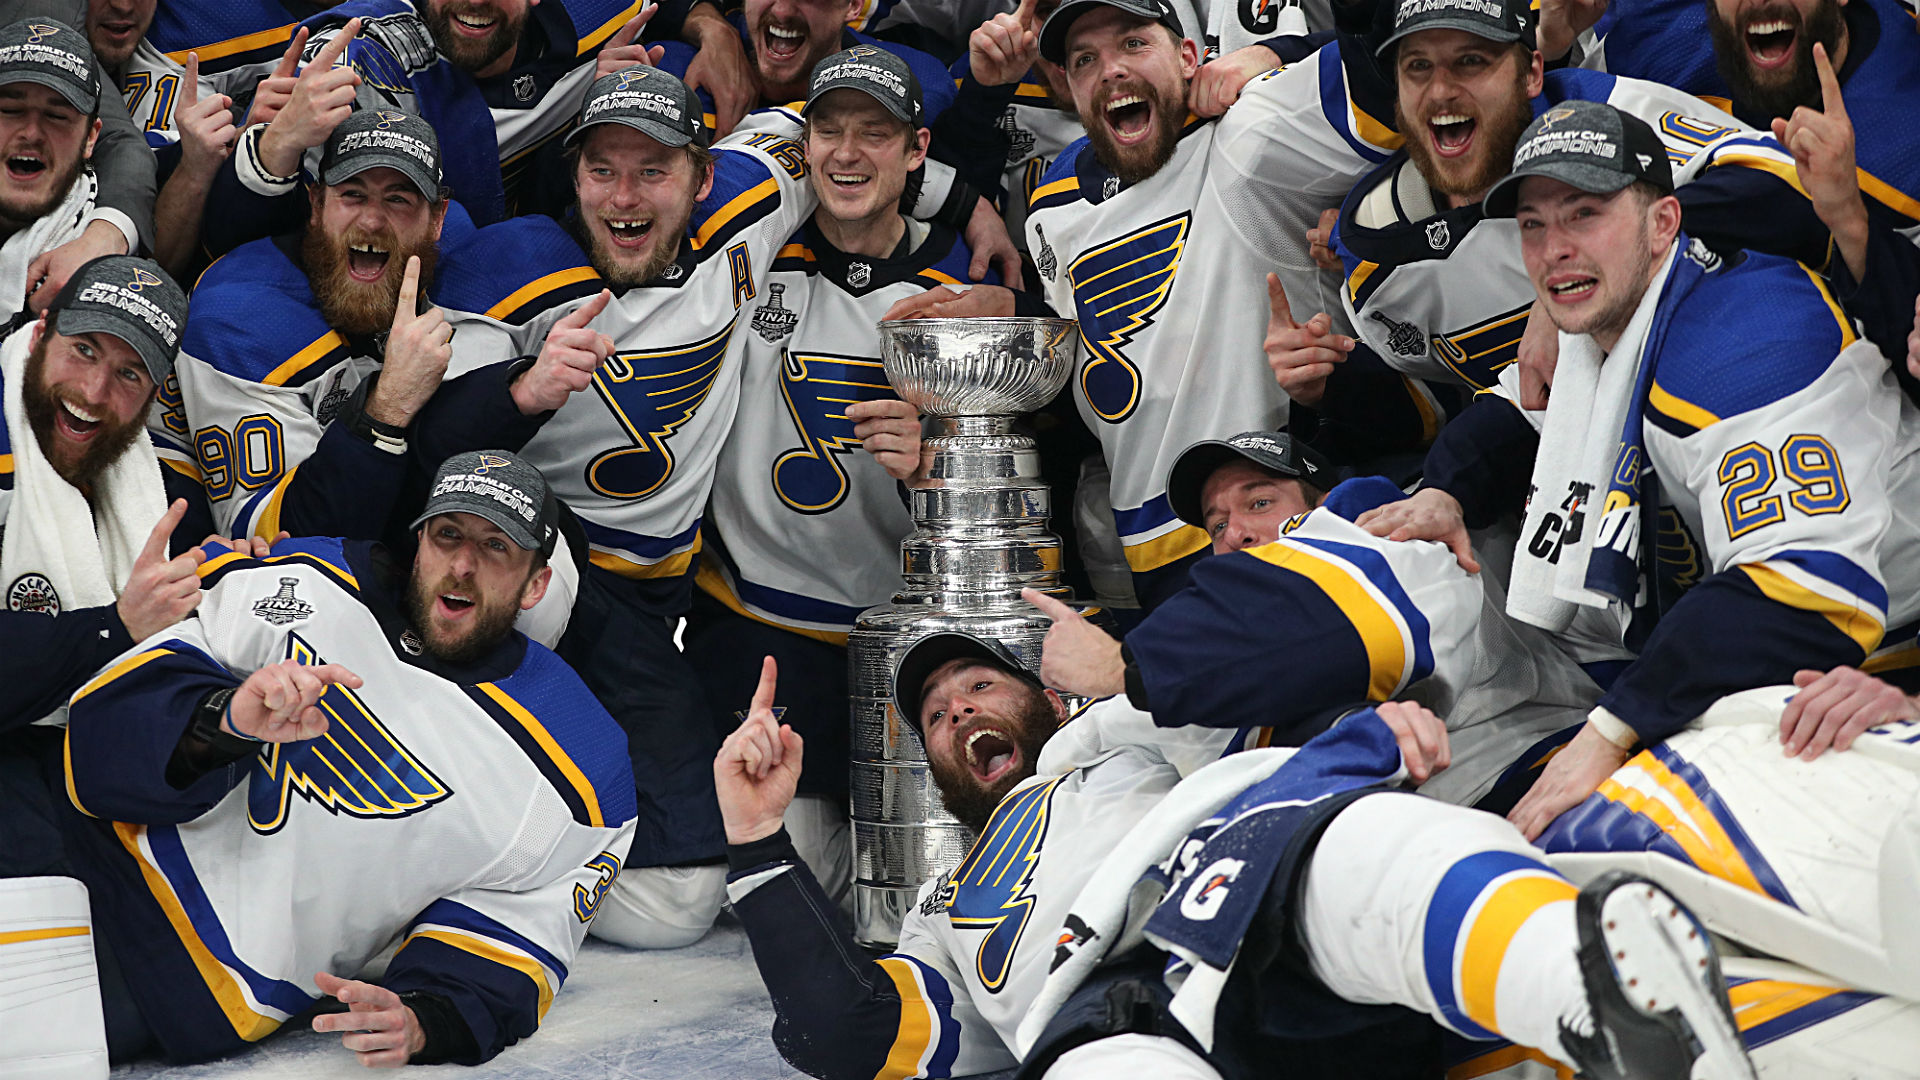 blues louis stanley cup st nhl champions schedule season opening teams getty playoff sporting games start predictions network radio siriusxm